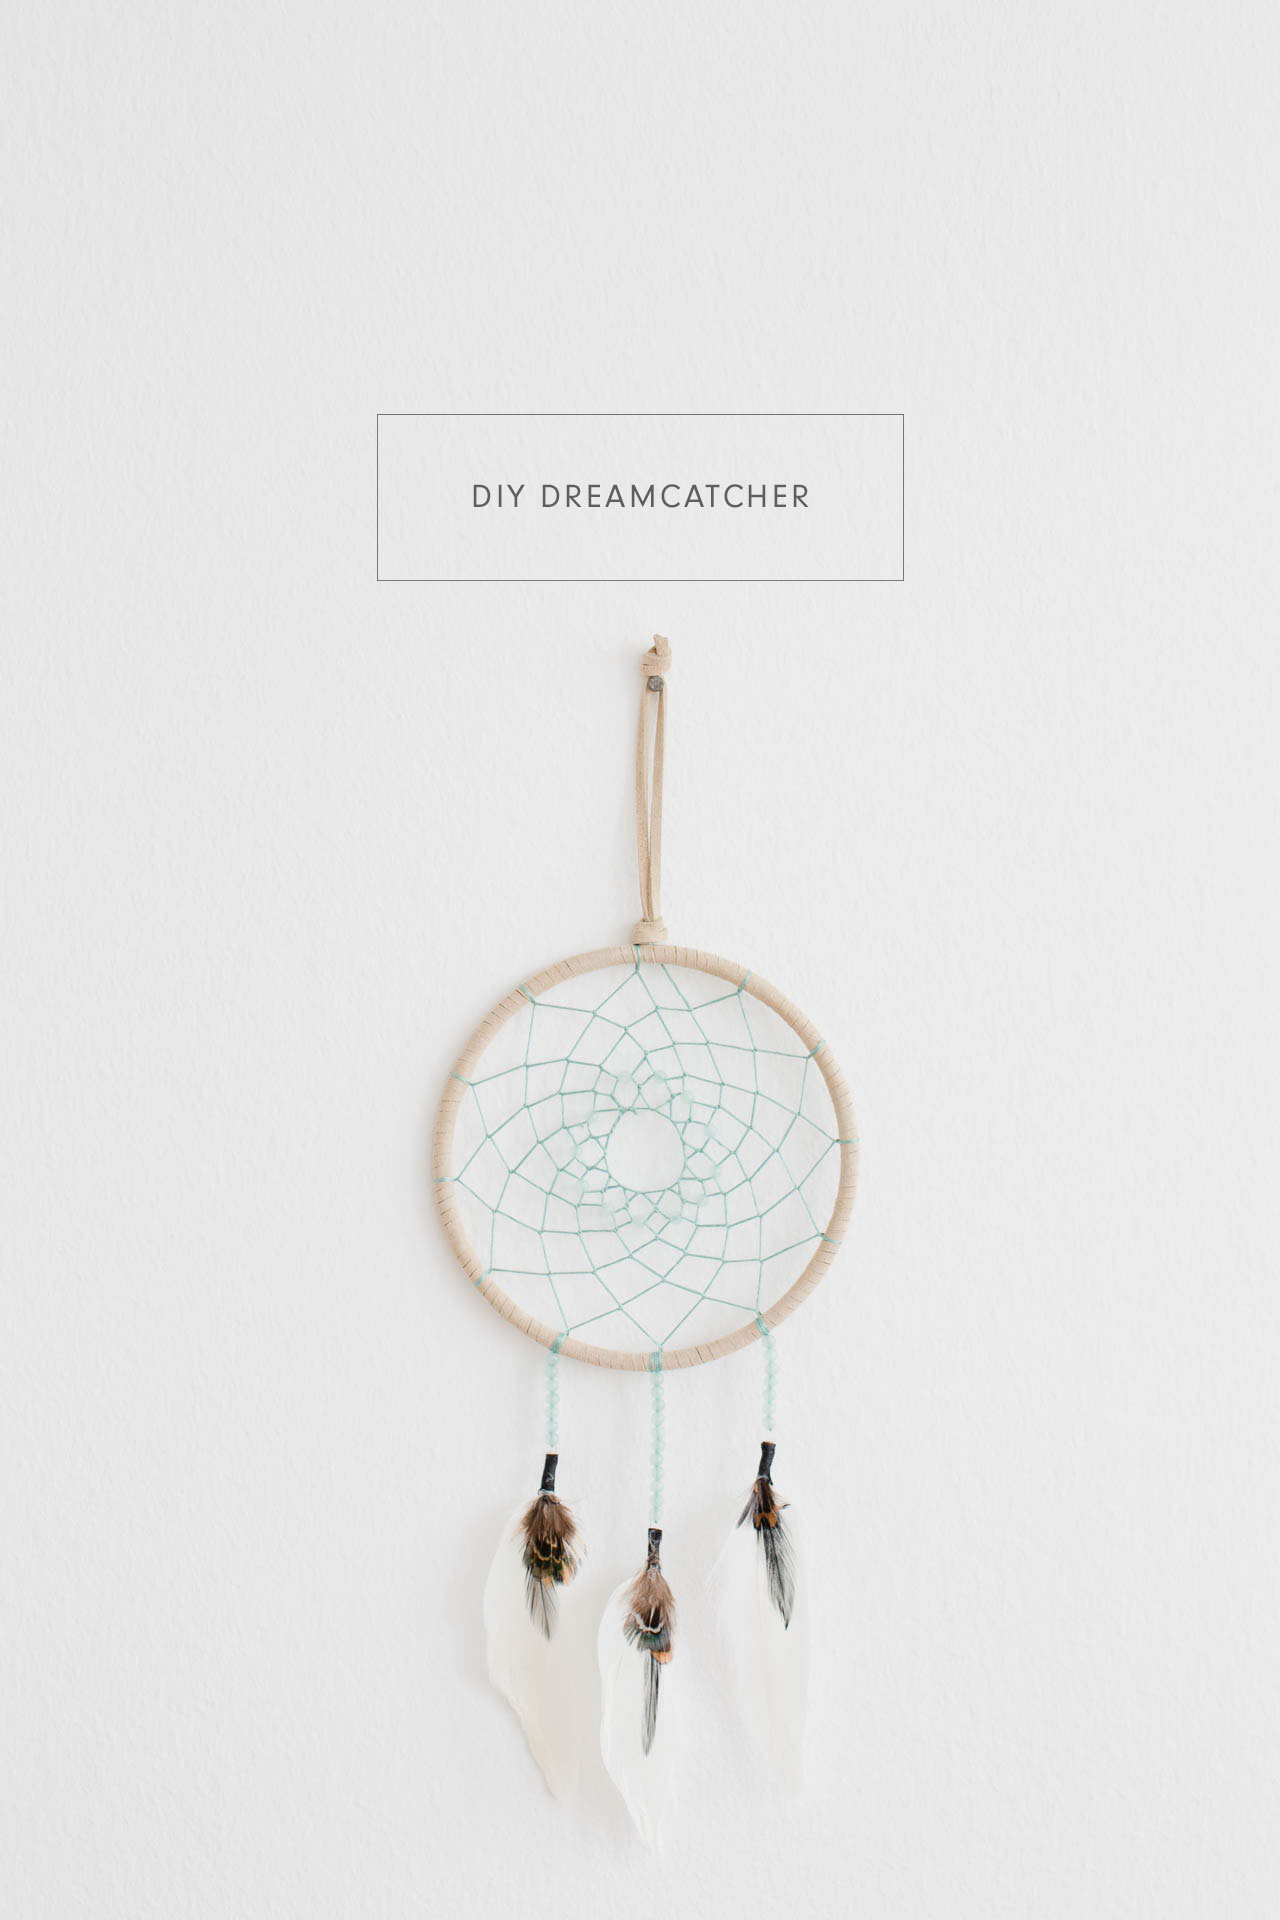 Simple diy dreamcatcher